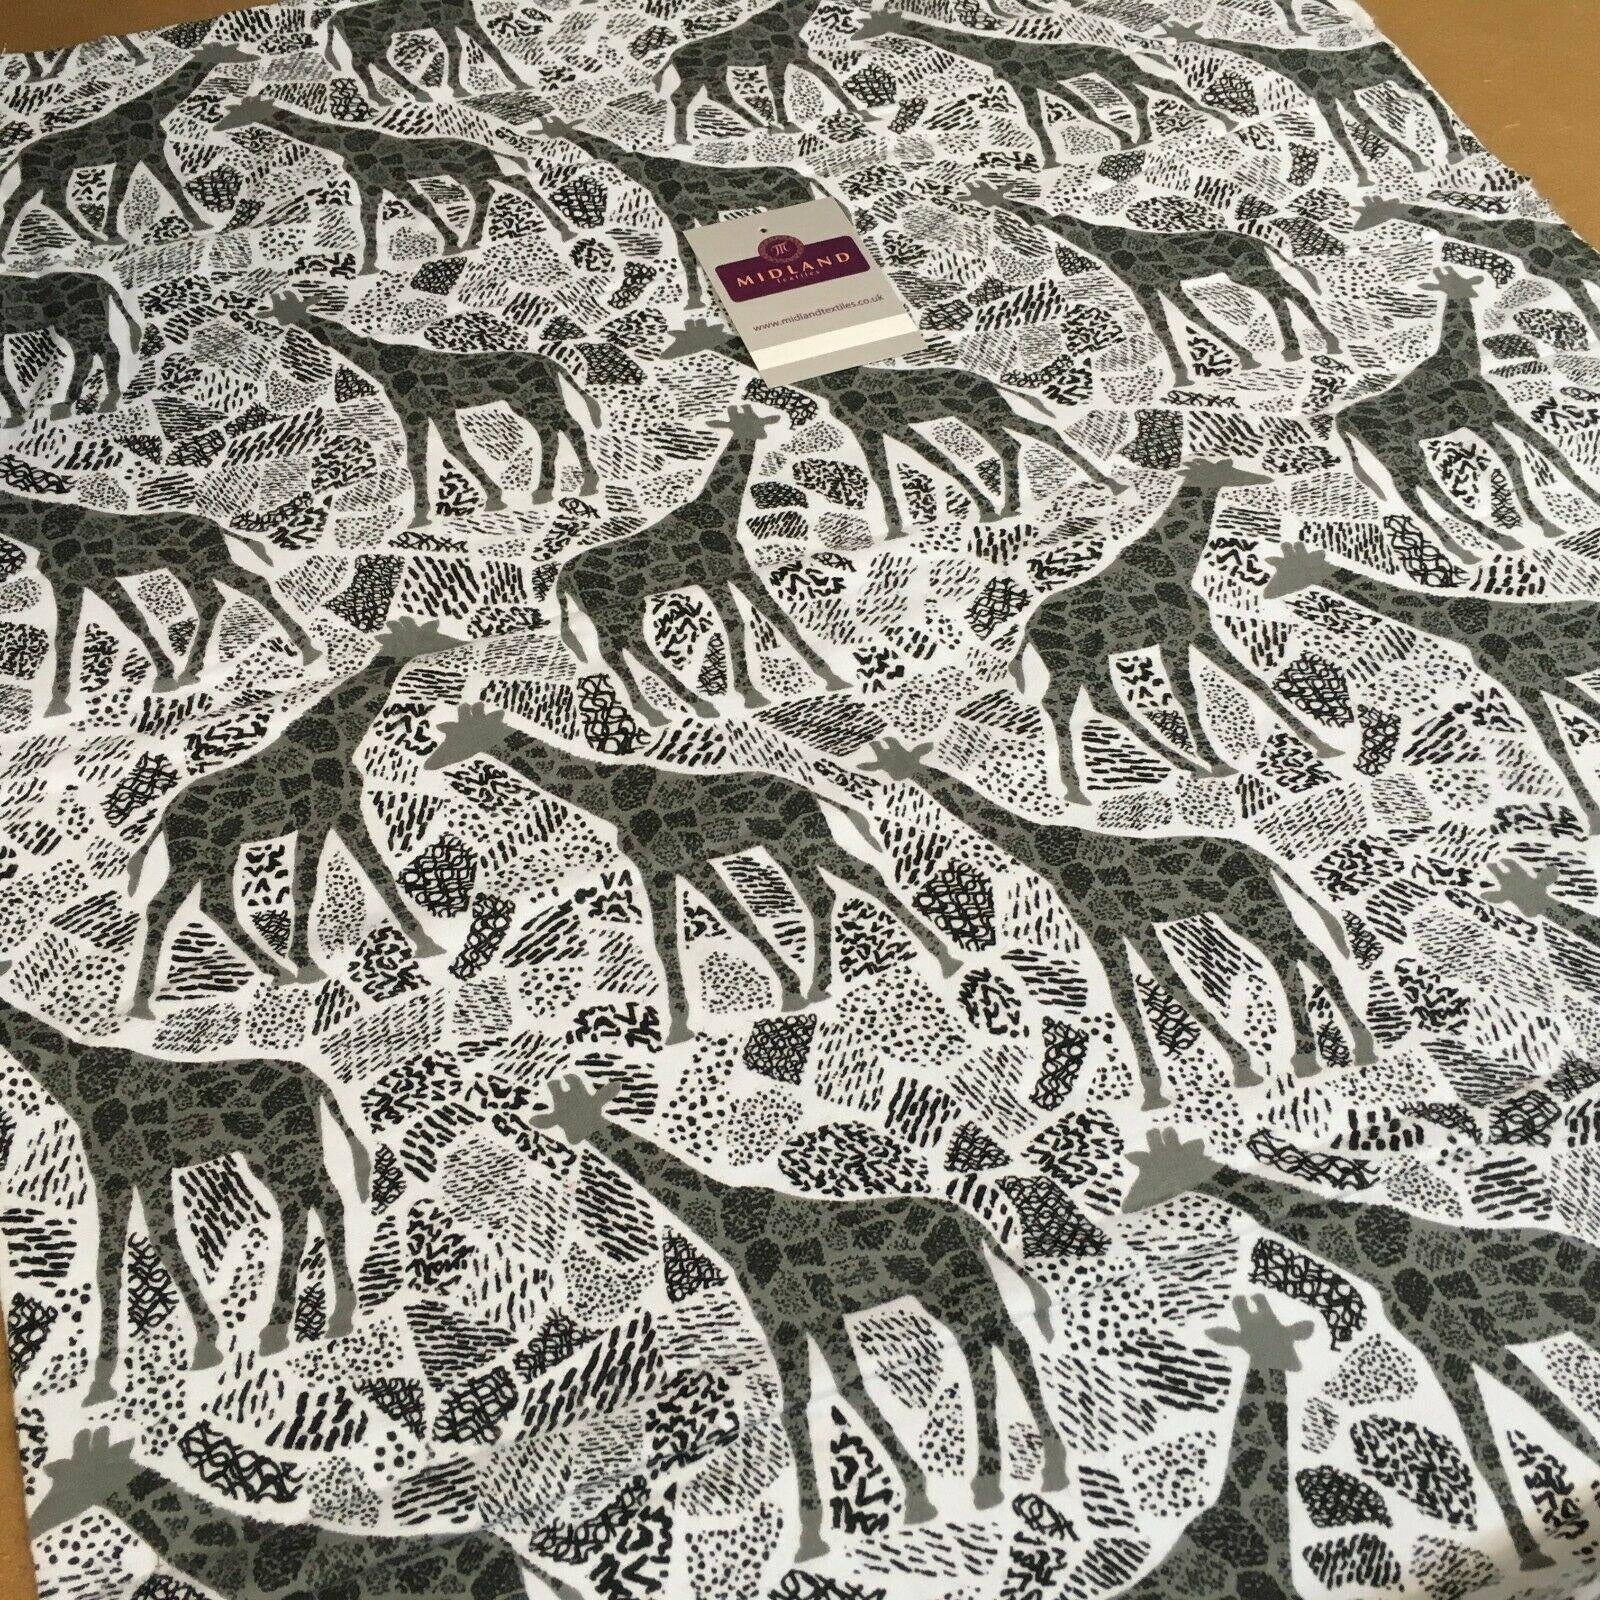 White Grey Giraffe Cotton Winceyette Soft Brushed Flannel Fabric 110cm MK1227-2